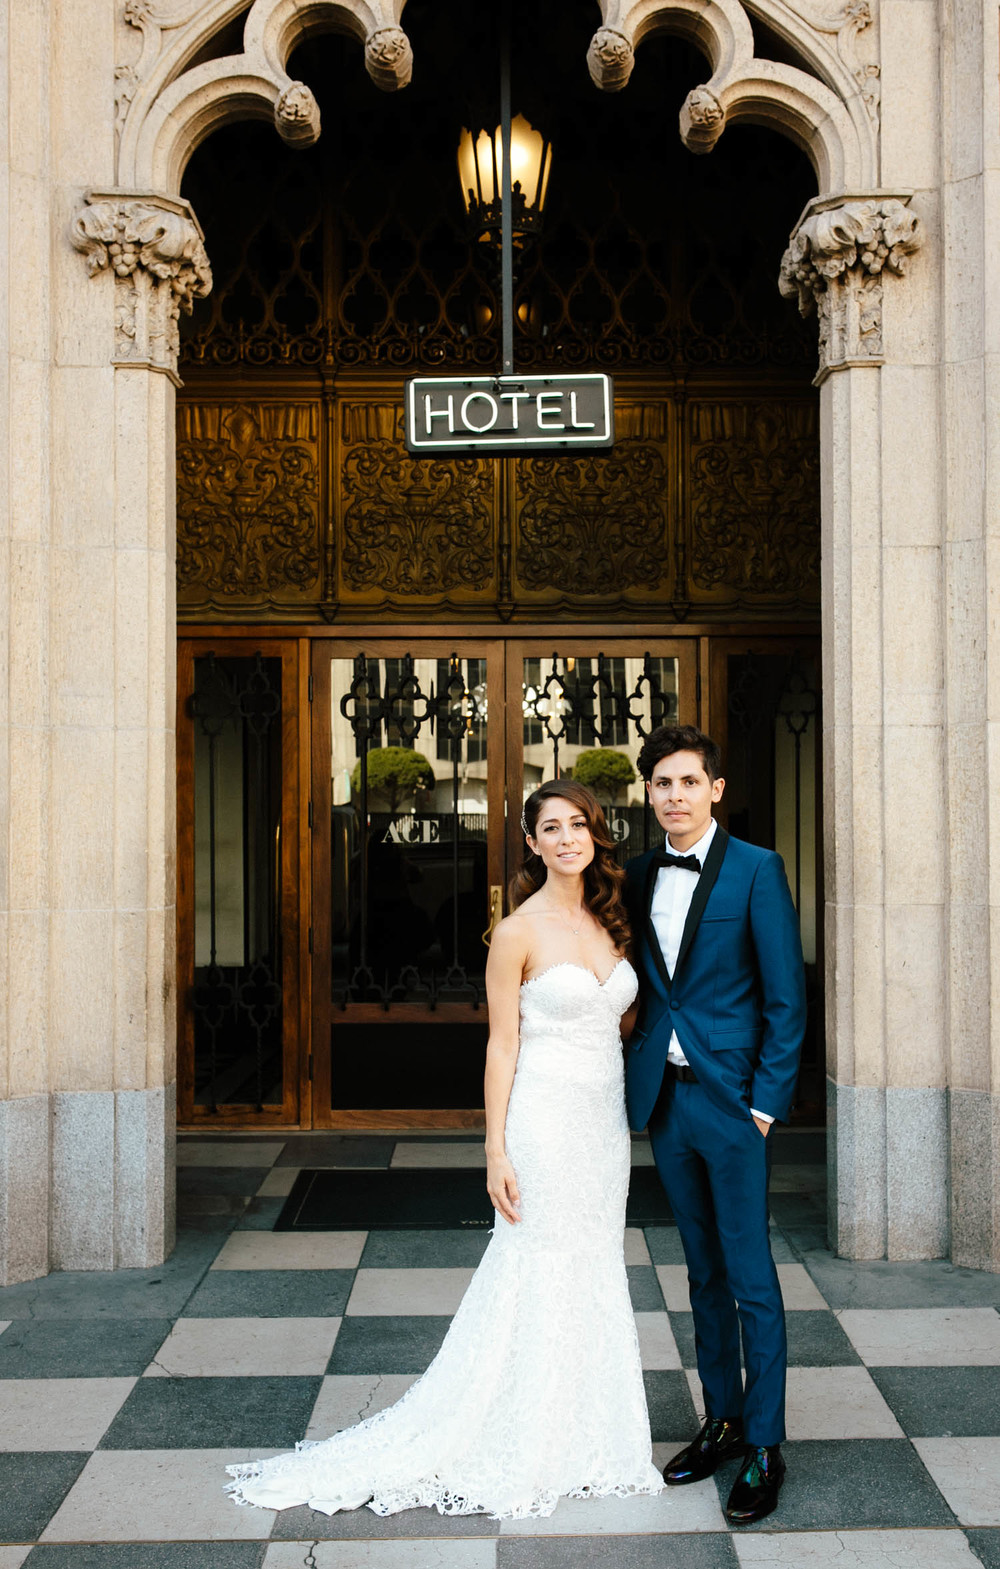 Los Angeles Wedding Photographer, Ace Hotel, Millwick Wedding - The Gathering Season x weareleoandkat 044.JPG